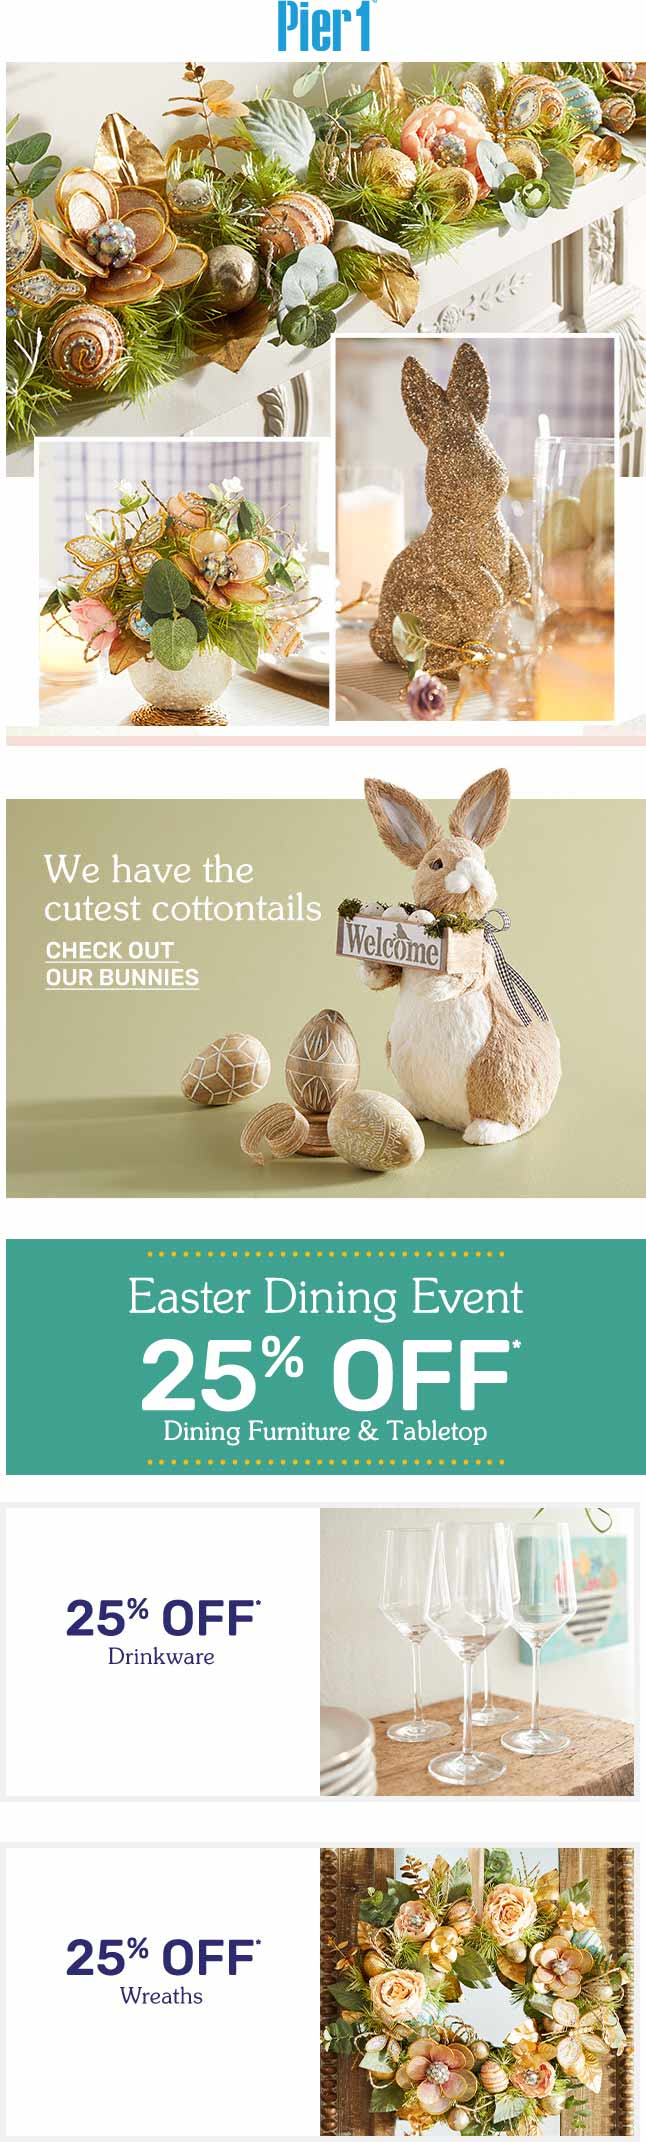 Pier 1 Coupon July 2019 25% off Easter at Pier 1, ditto online